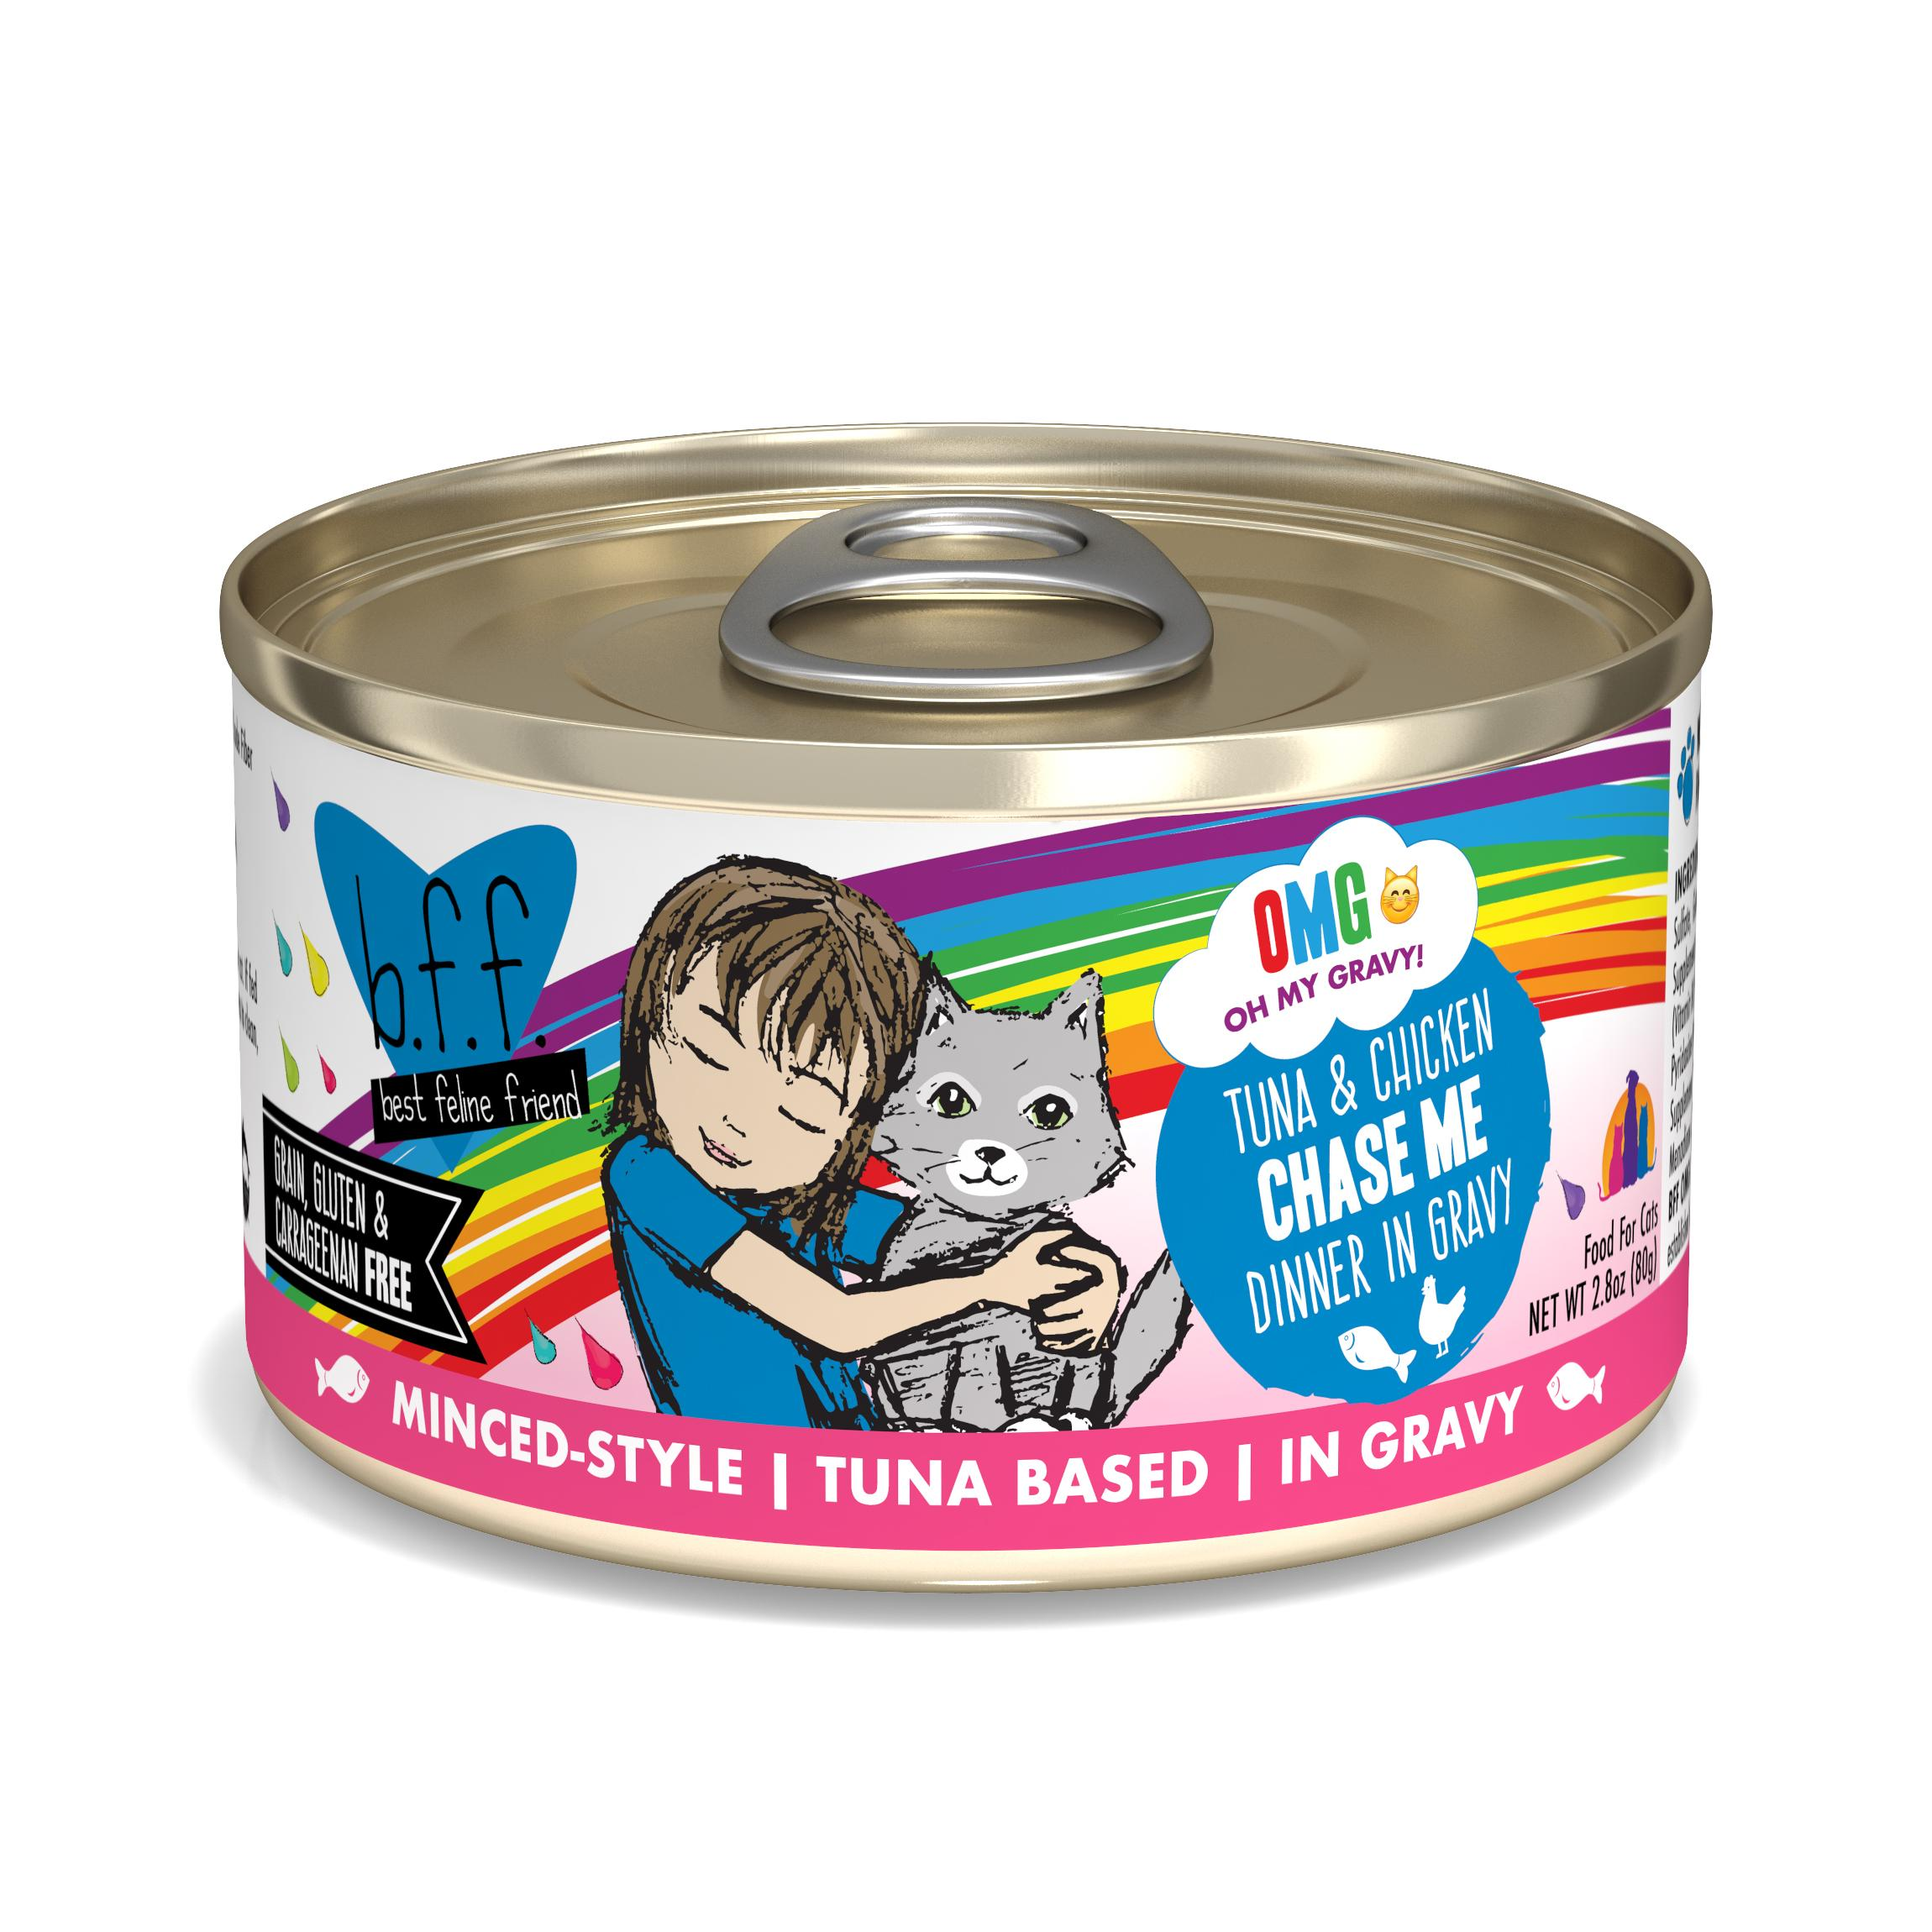 BFF Oh My Gravy! Chase Me! Tuna & Chicken Dinner in Gravy Grain-Free Wet Cat Food Image